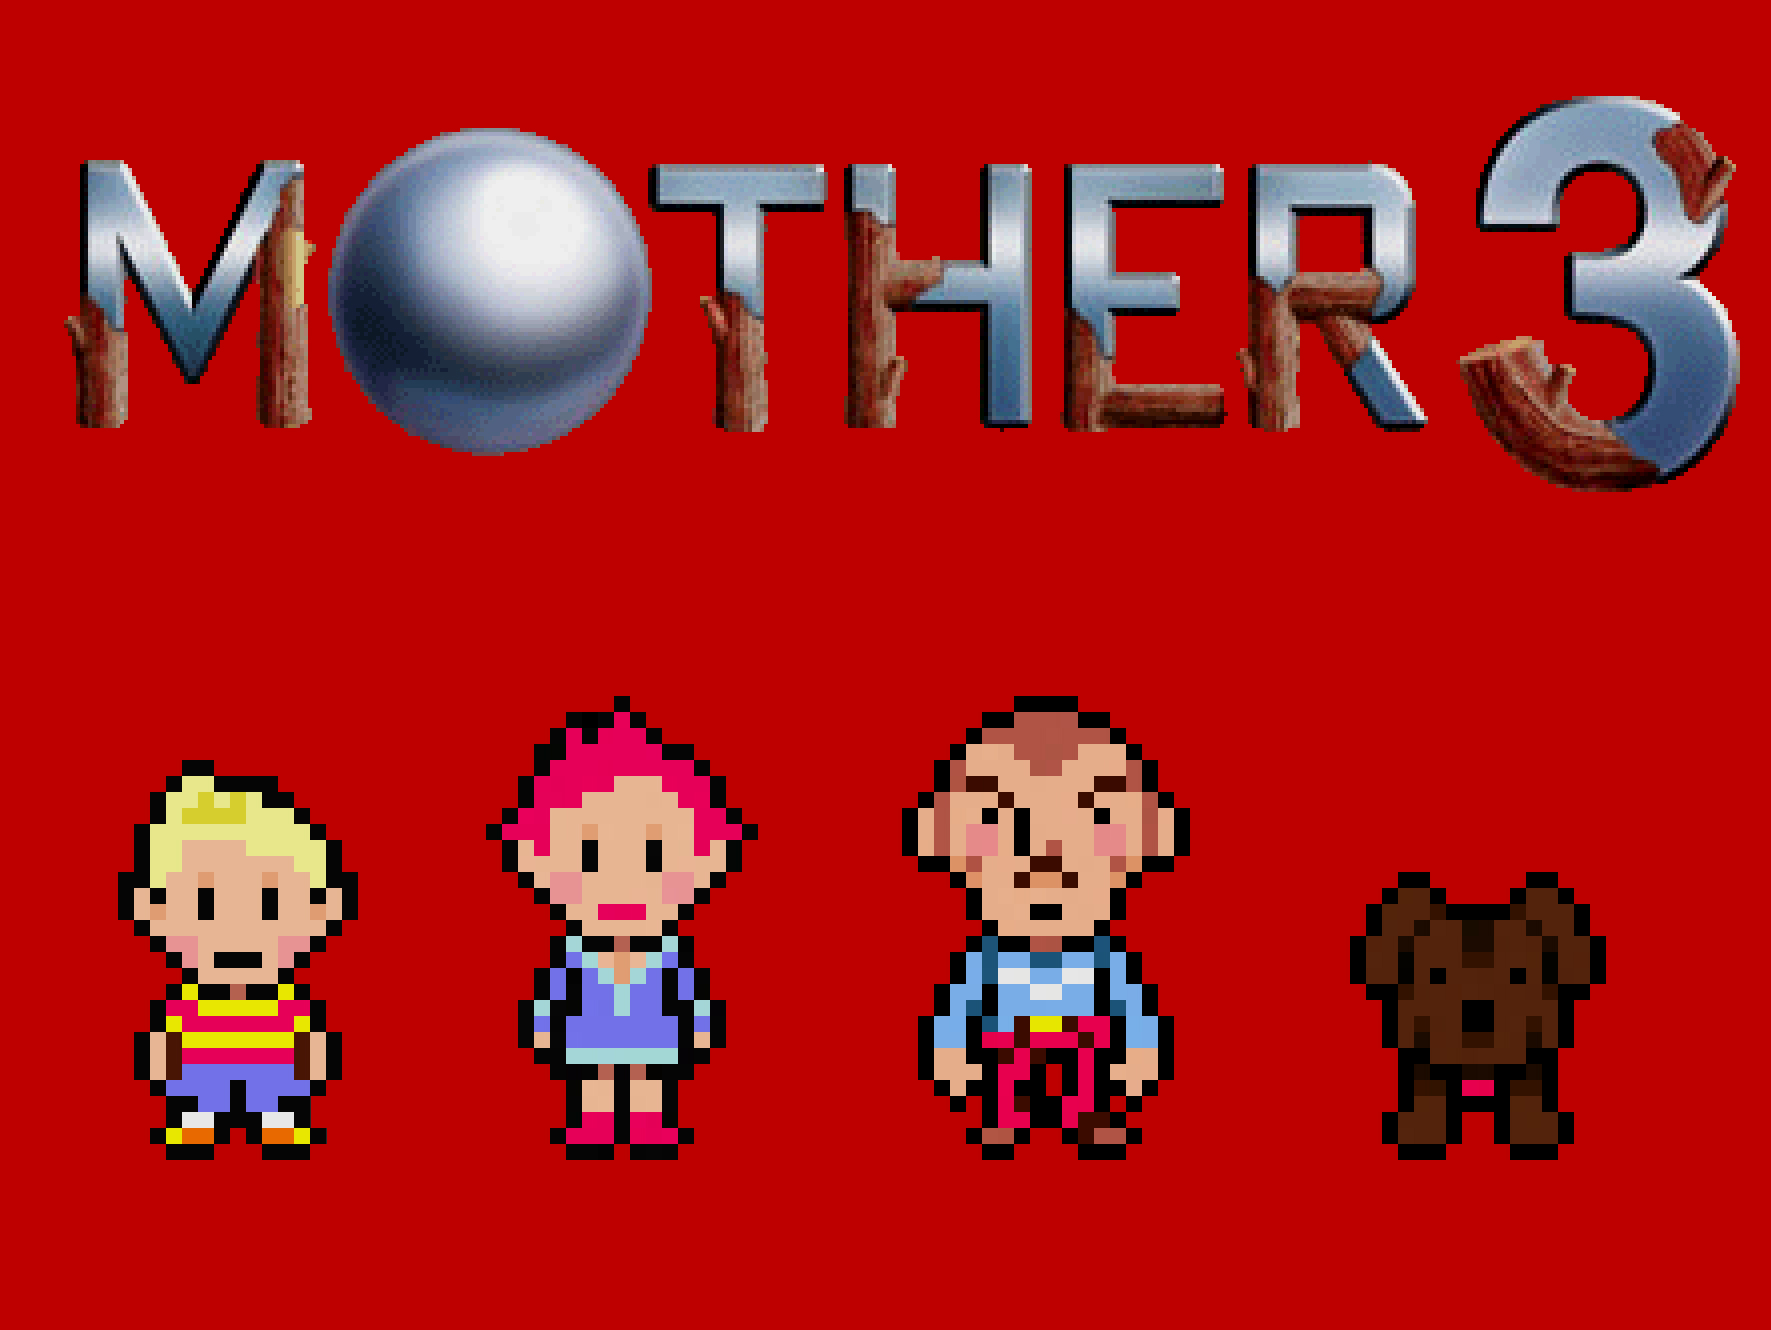 Programa 8x31 (12-06-15) 'Especial Pre-E3' Mother_3_Sprite_T_shirt_Design_by_UncleLaurence